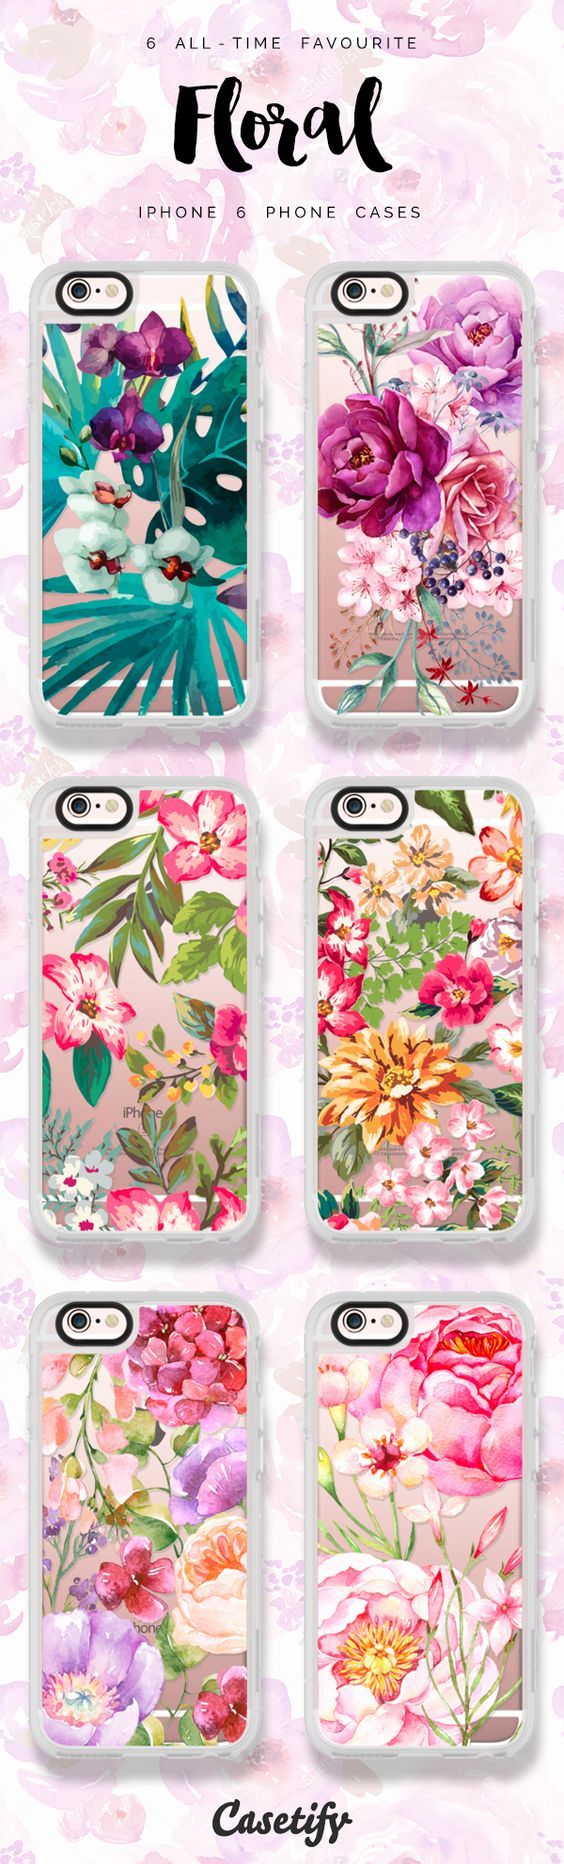 6 all time favourite floral iPhone 6 phone cases